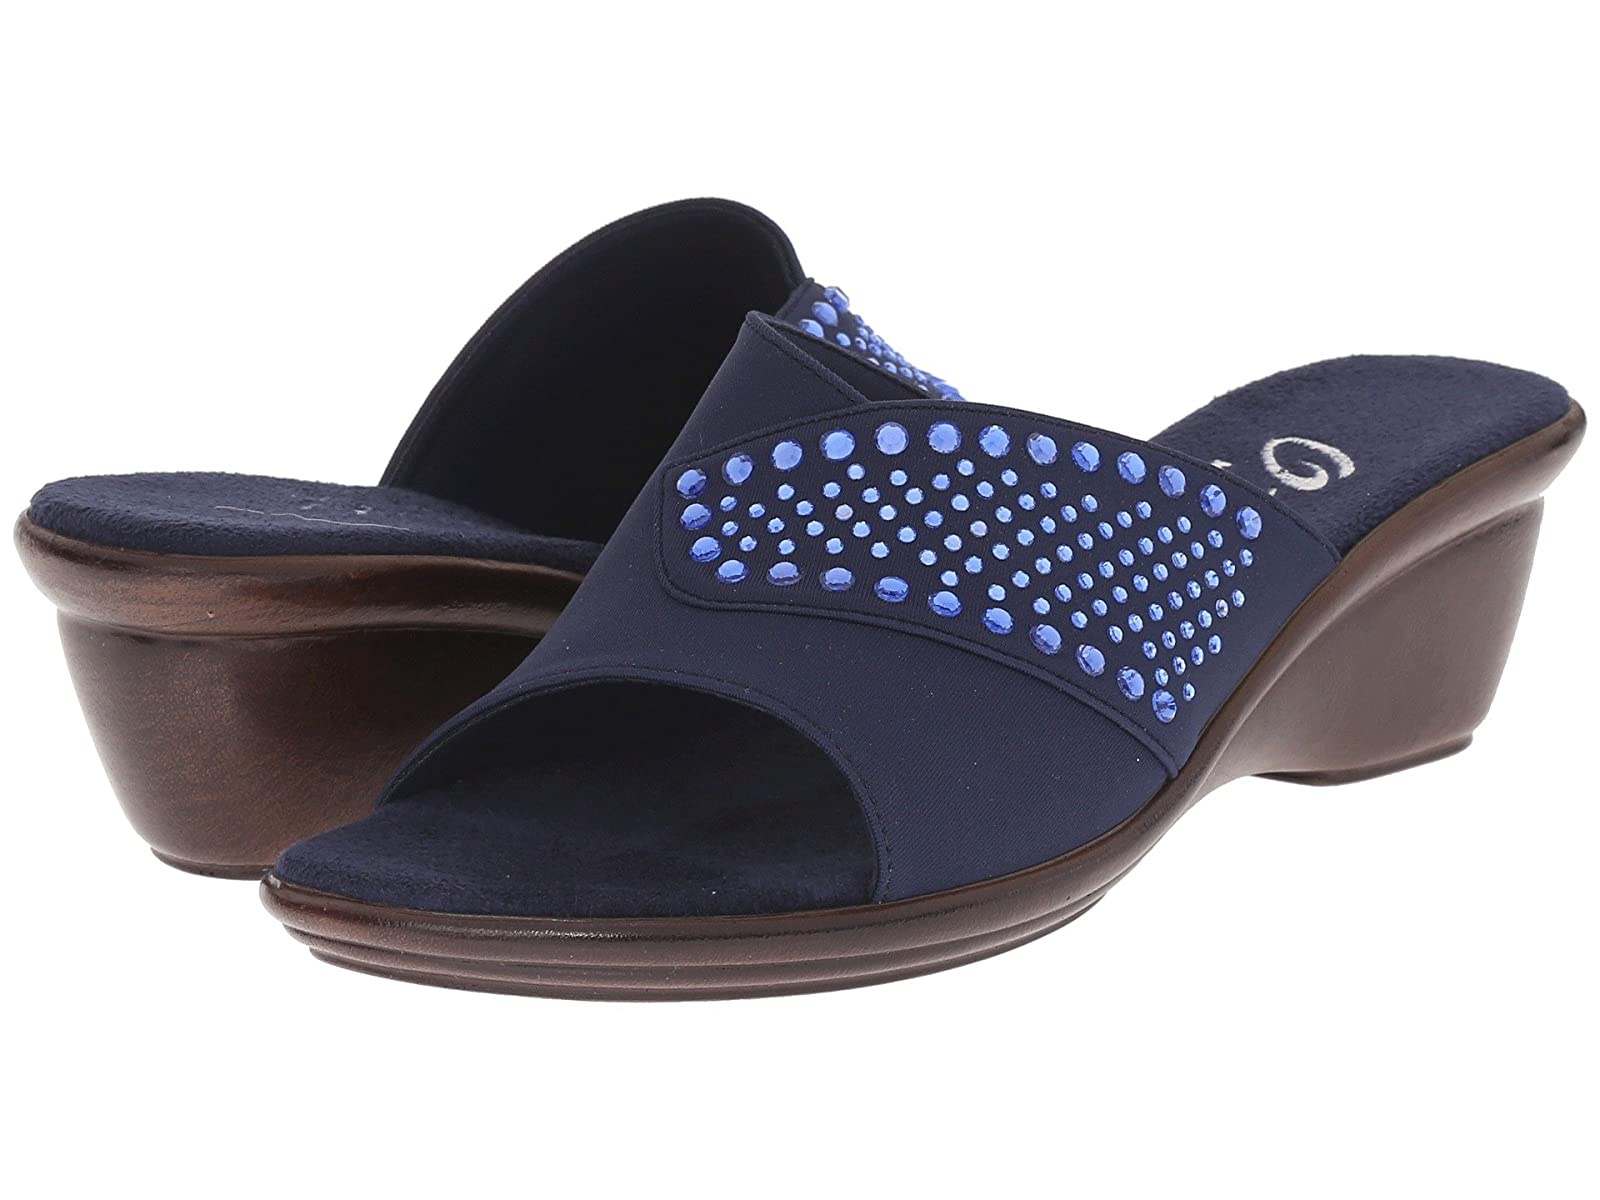 Onex ShineCheap and distinctive eye-catching shoes